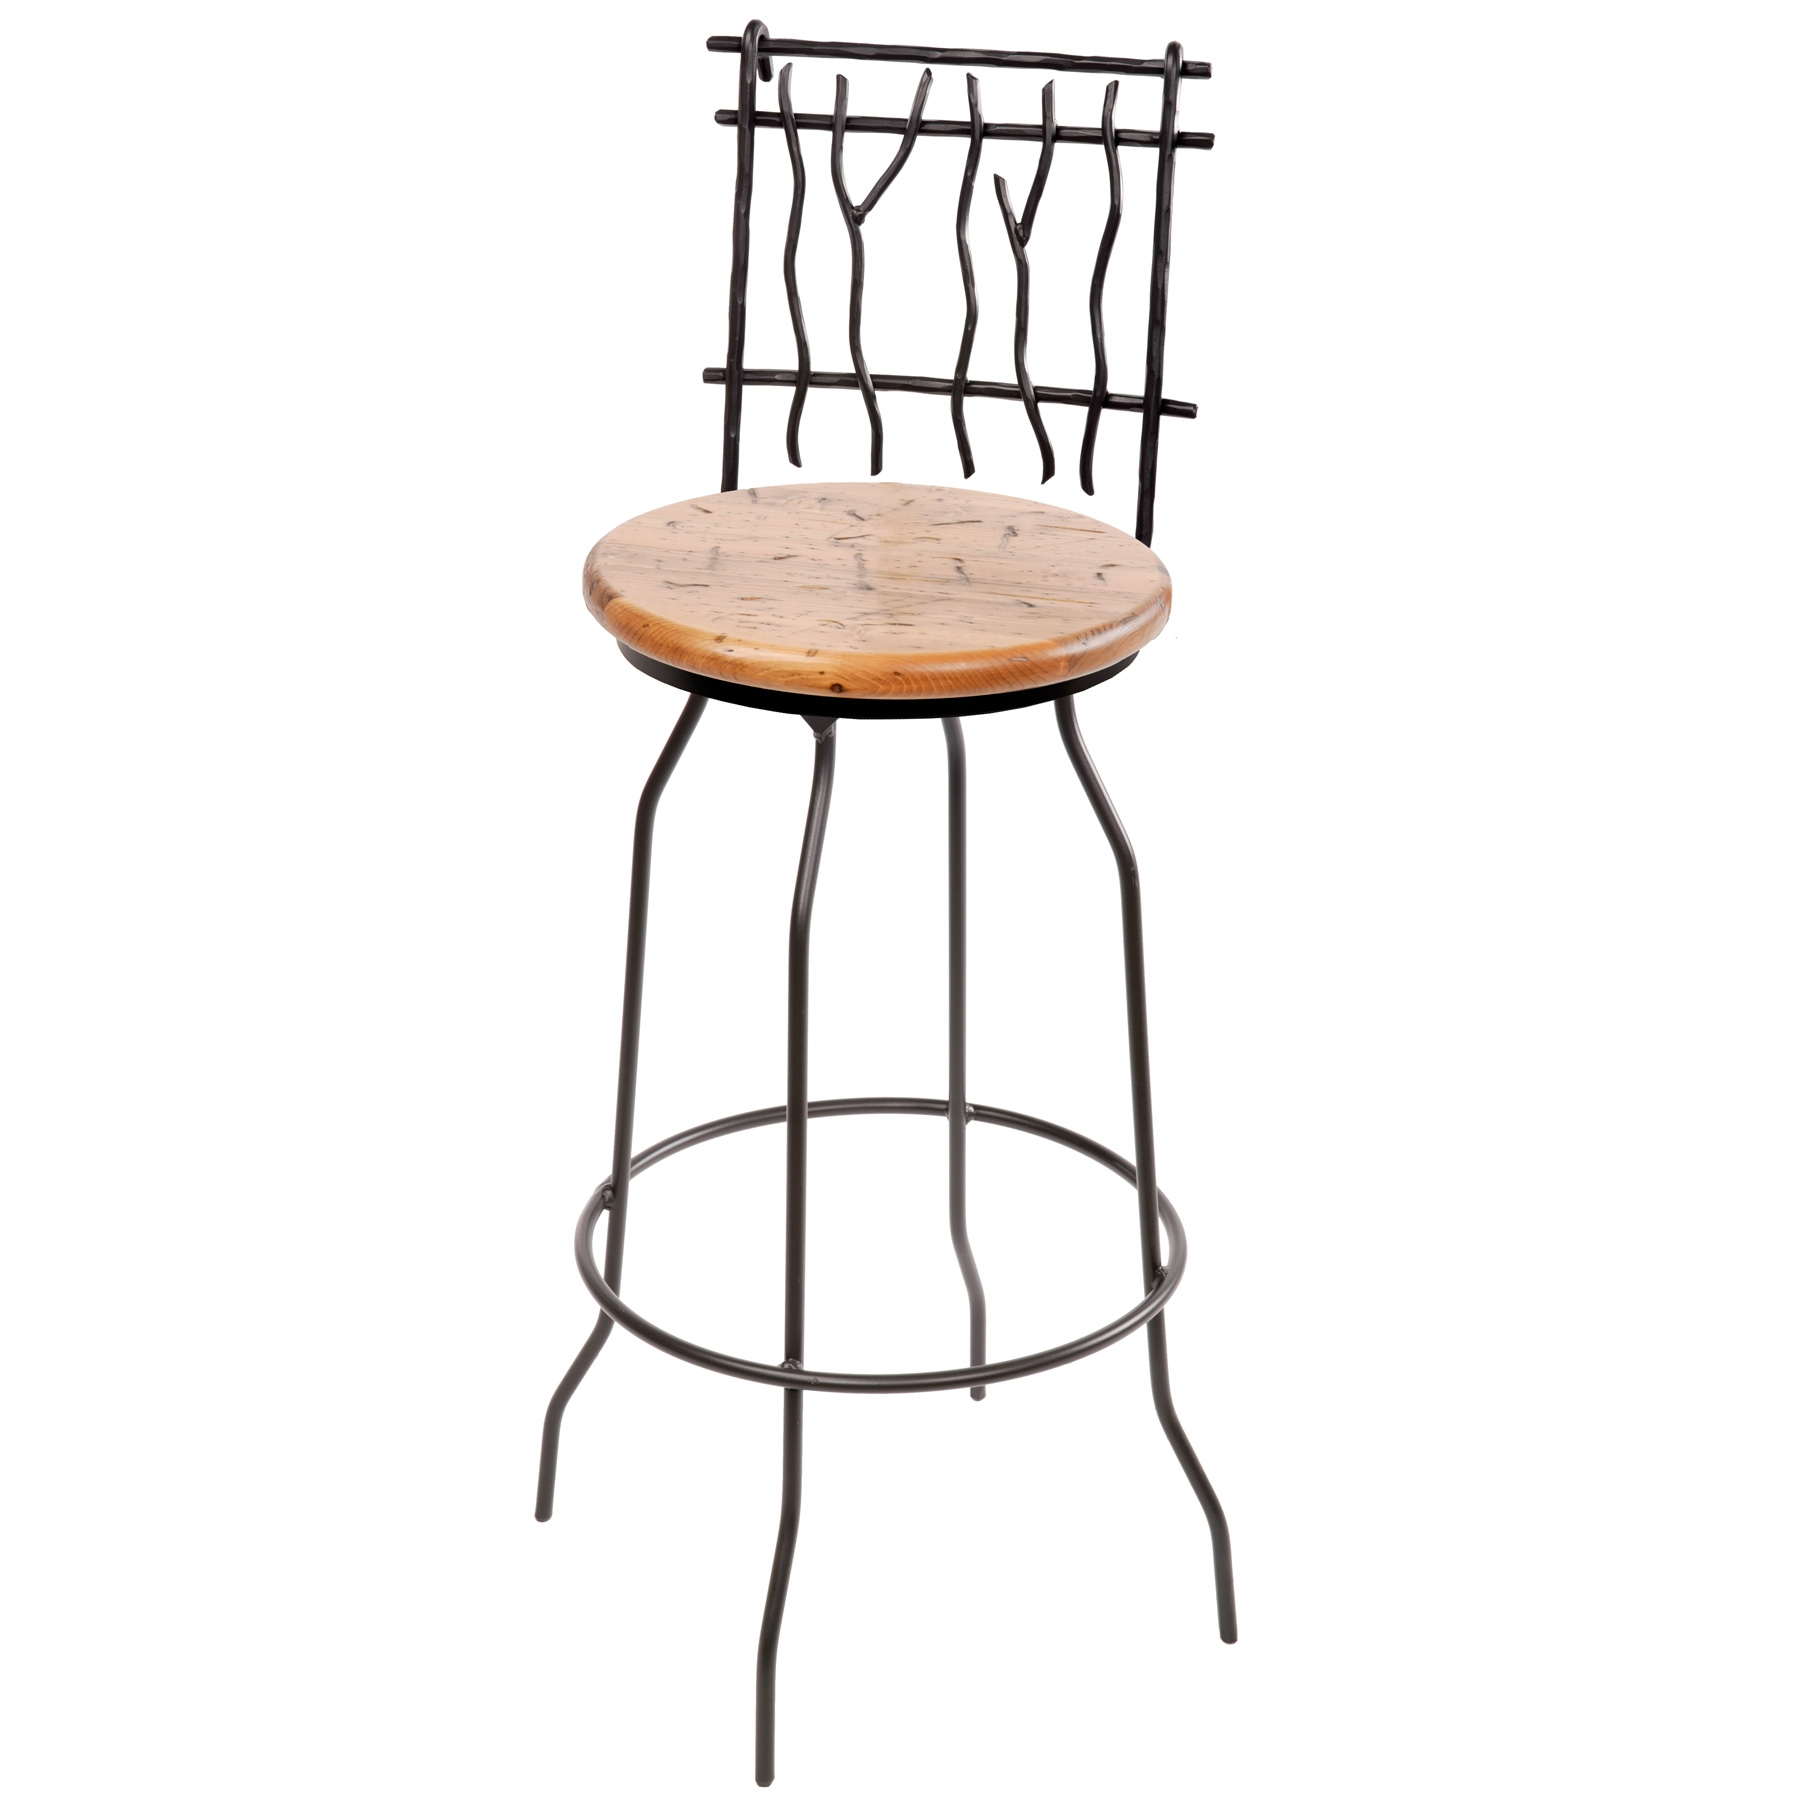 Rustic wrought iron sassafras counter stool in seat